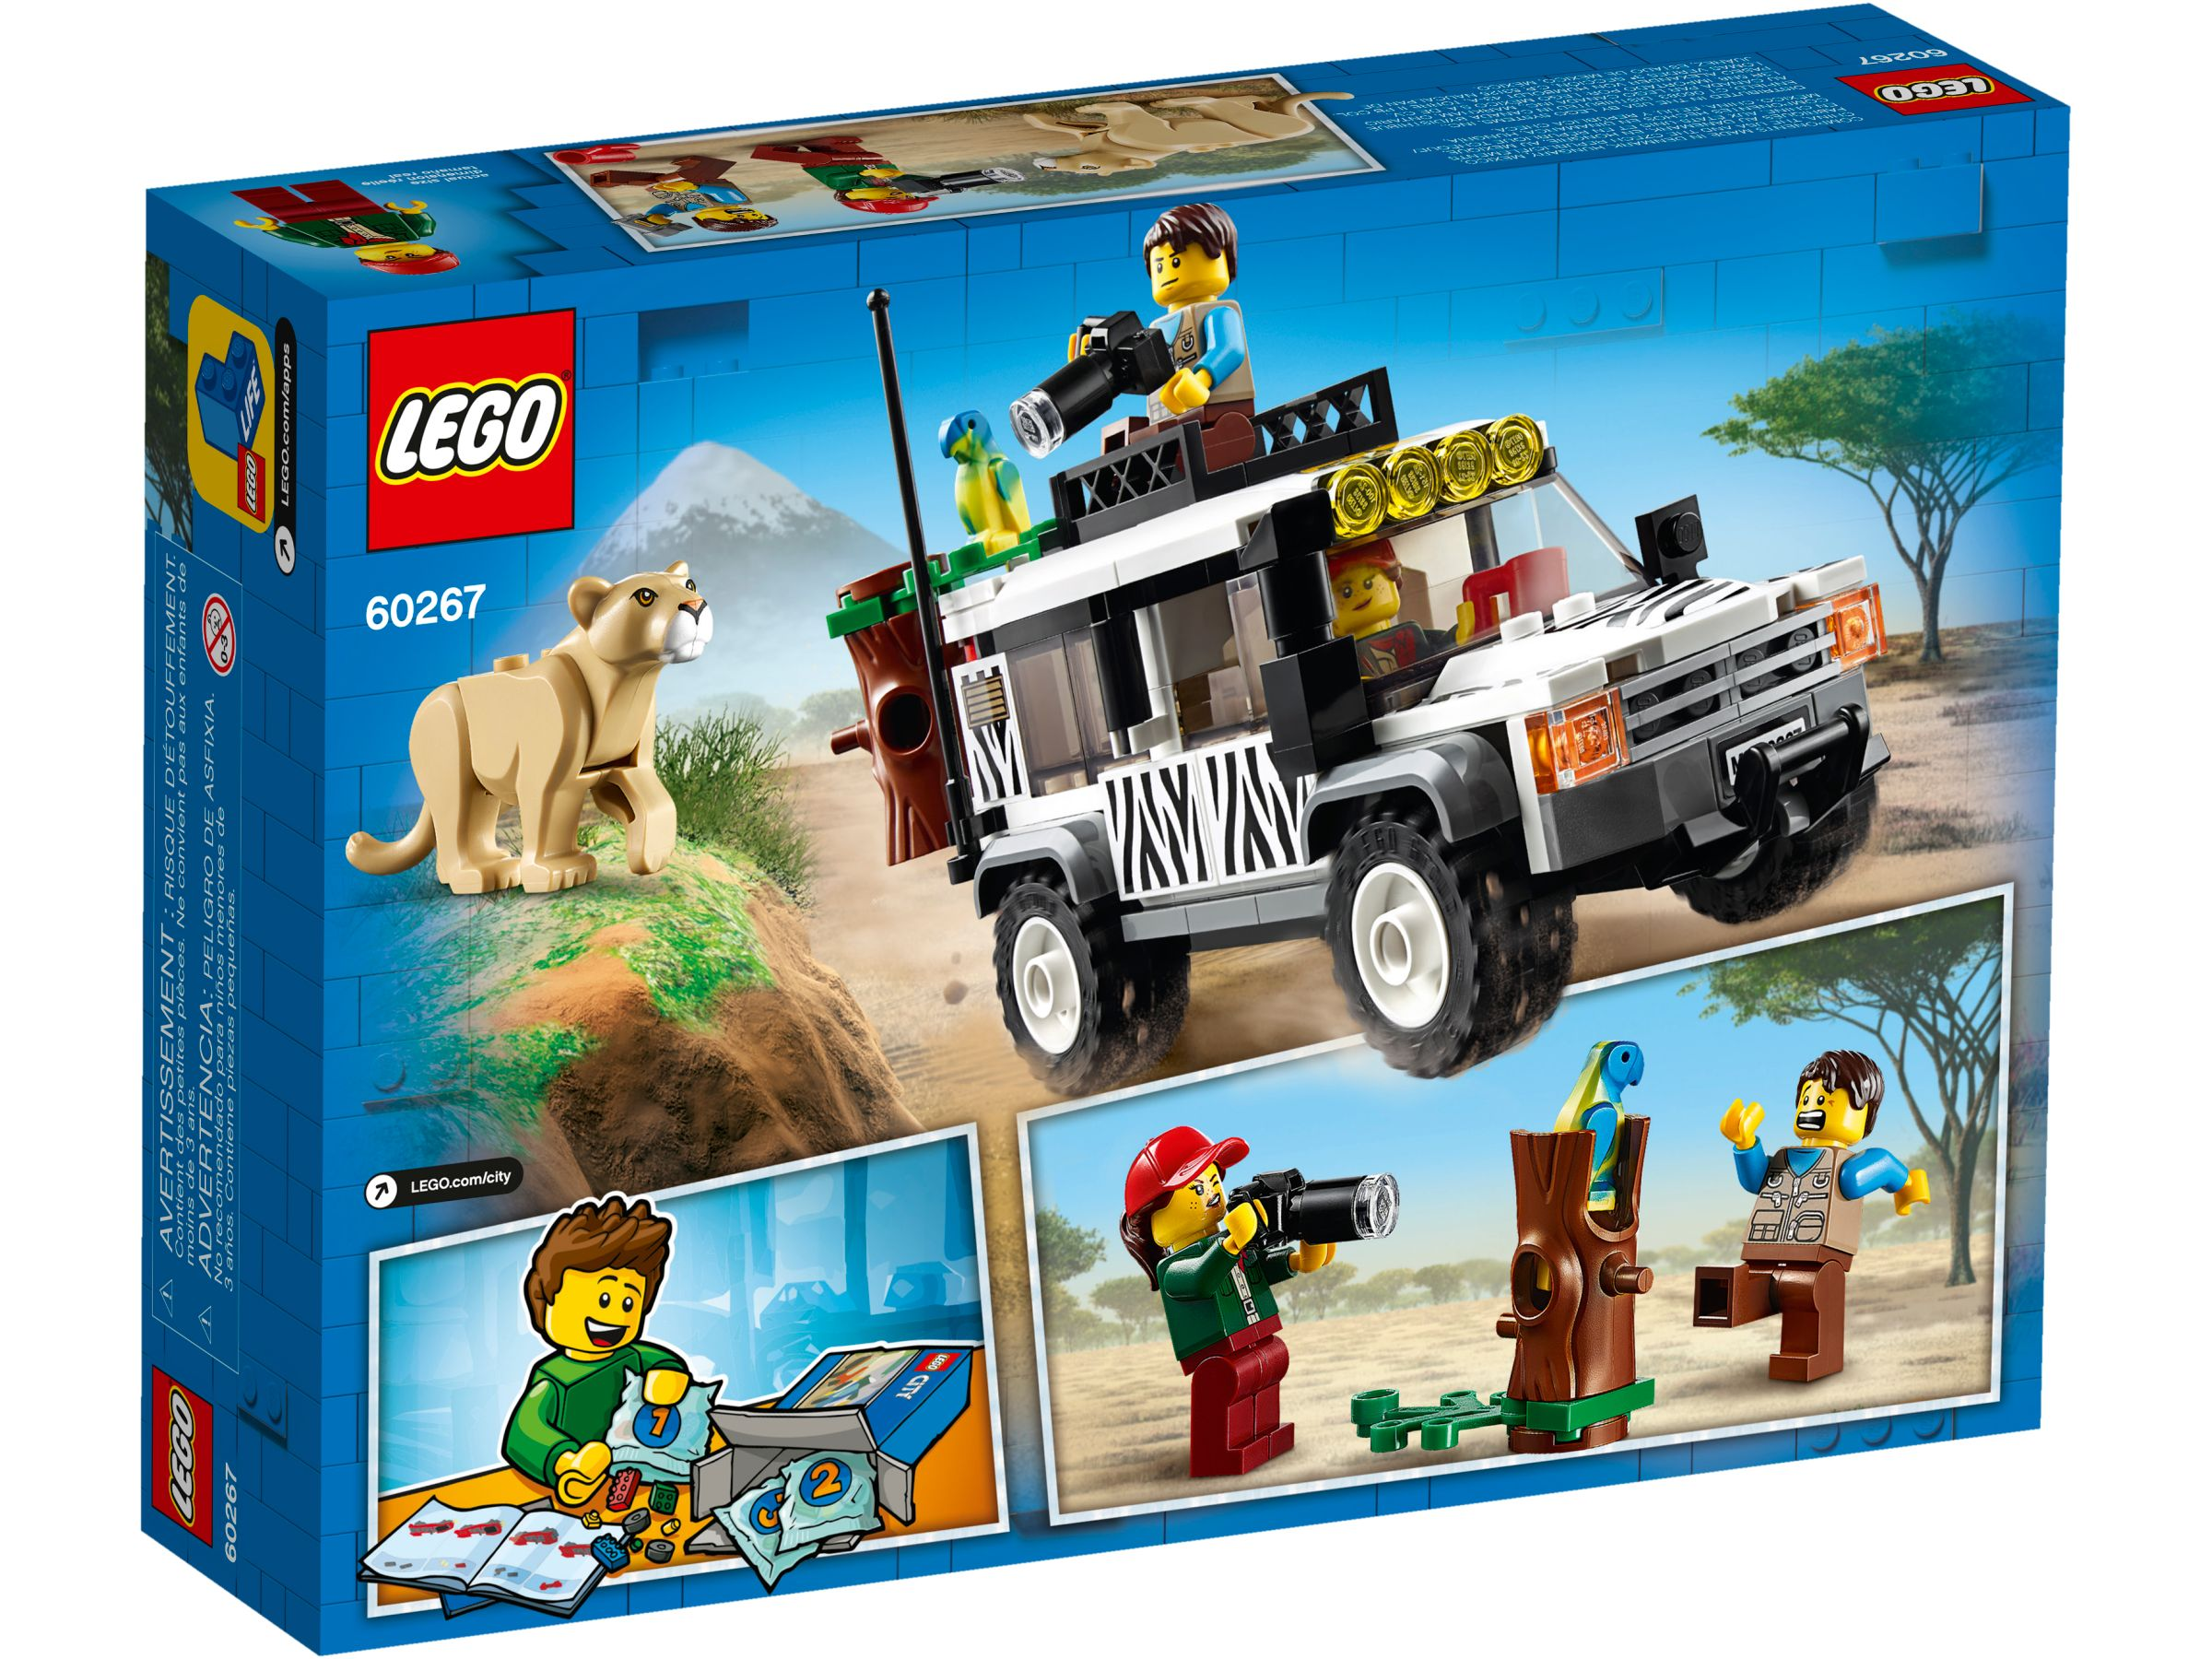 LEGO City 60267 Safari Adventure LEGO_60267_alt4.jpg